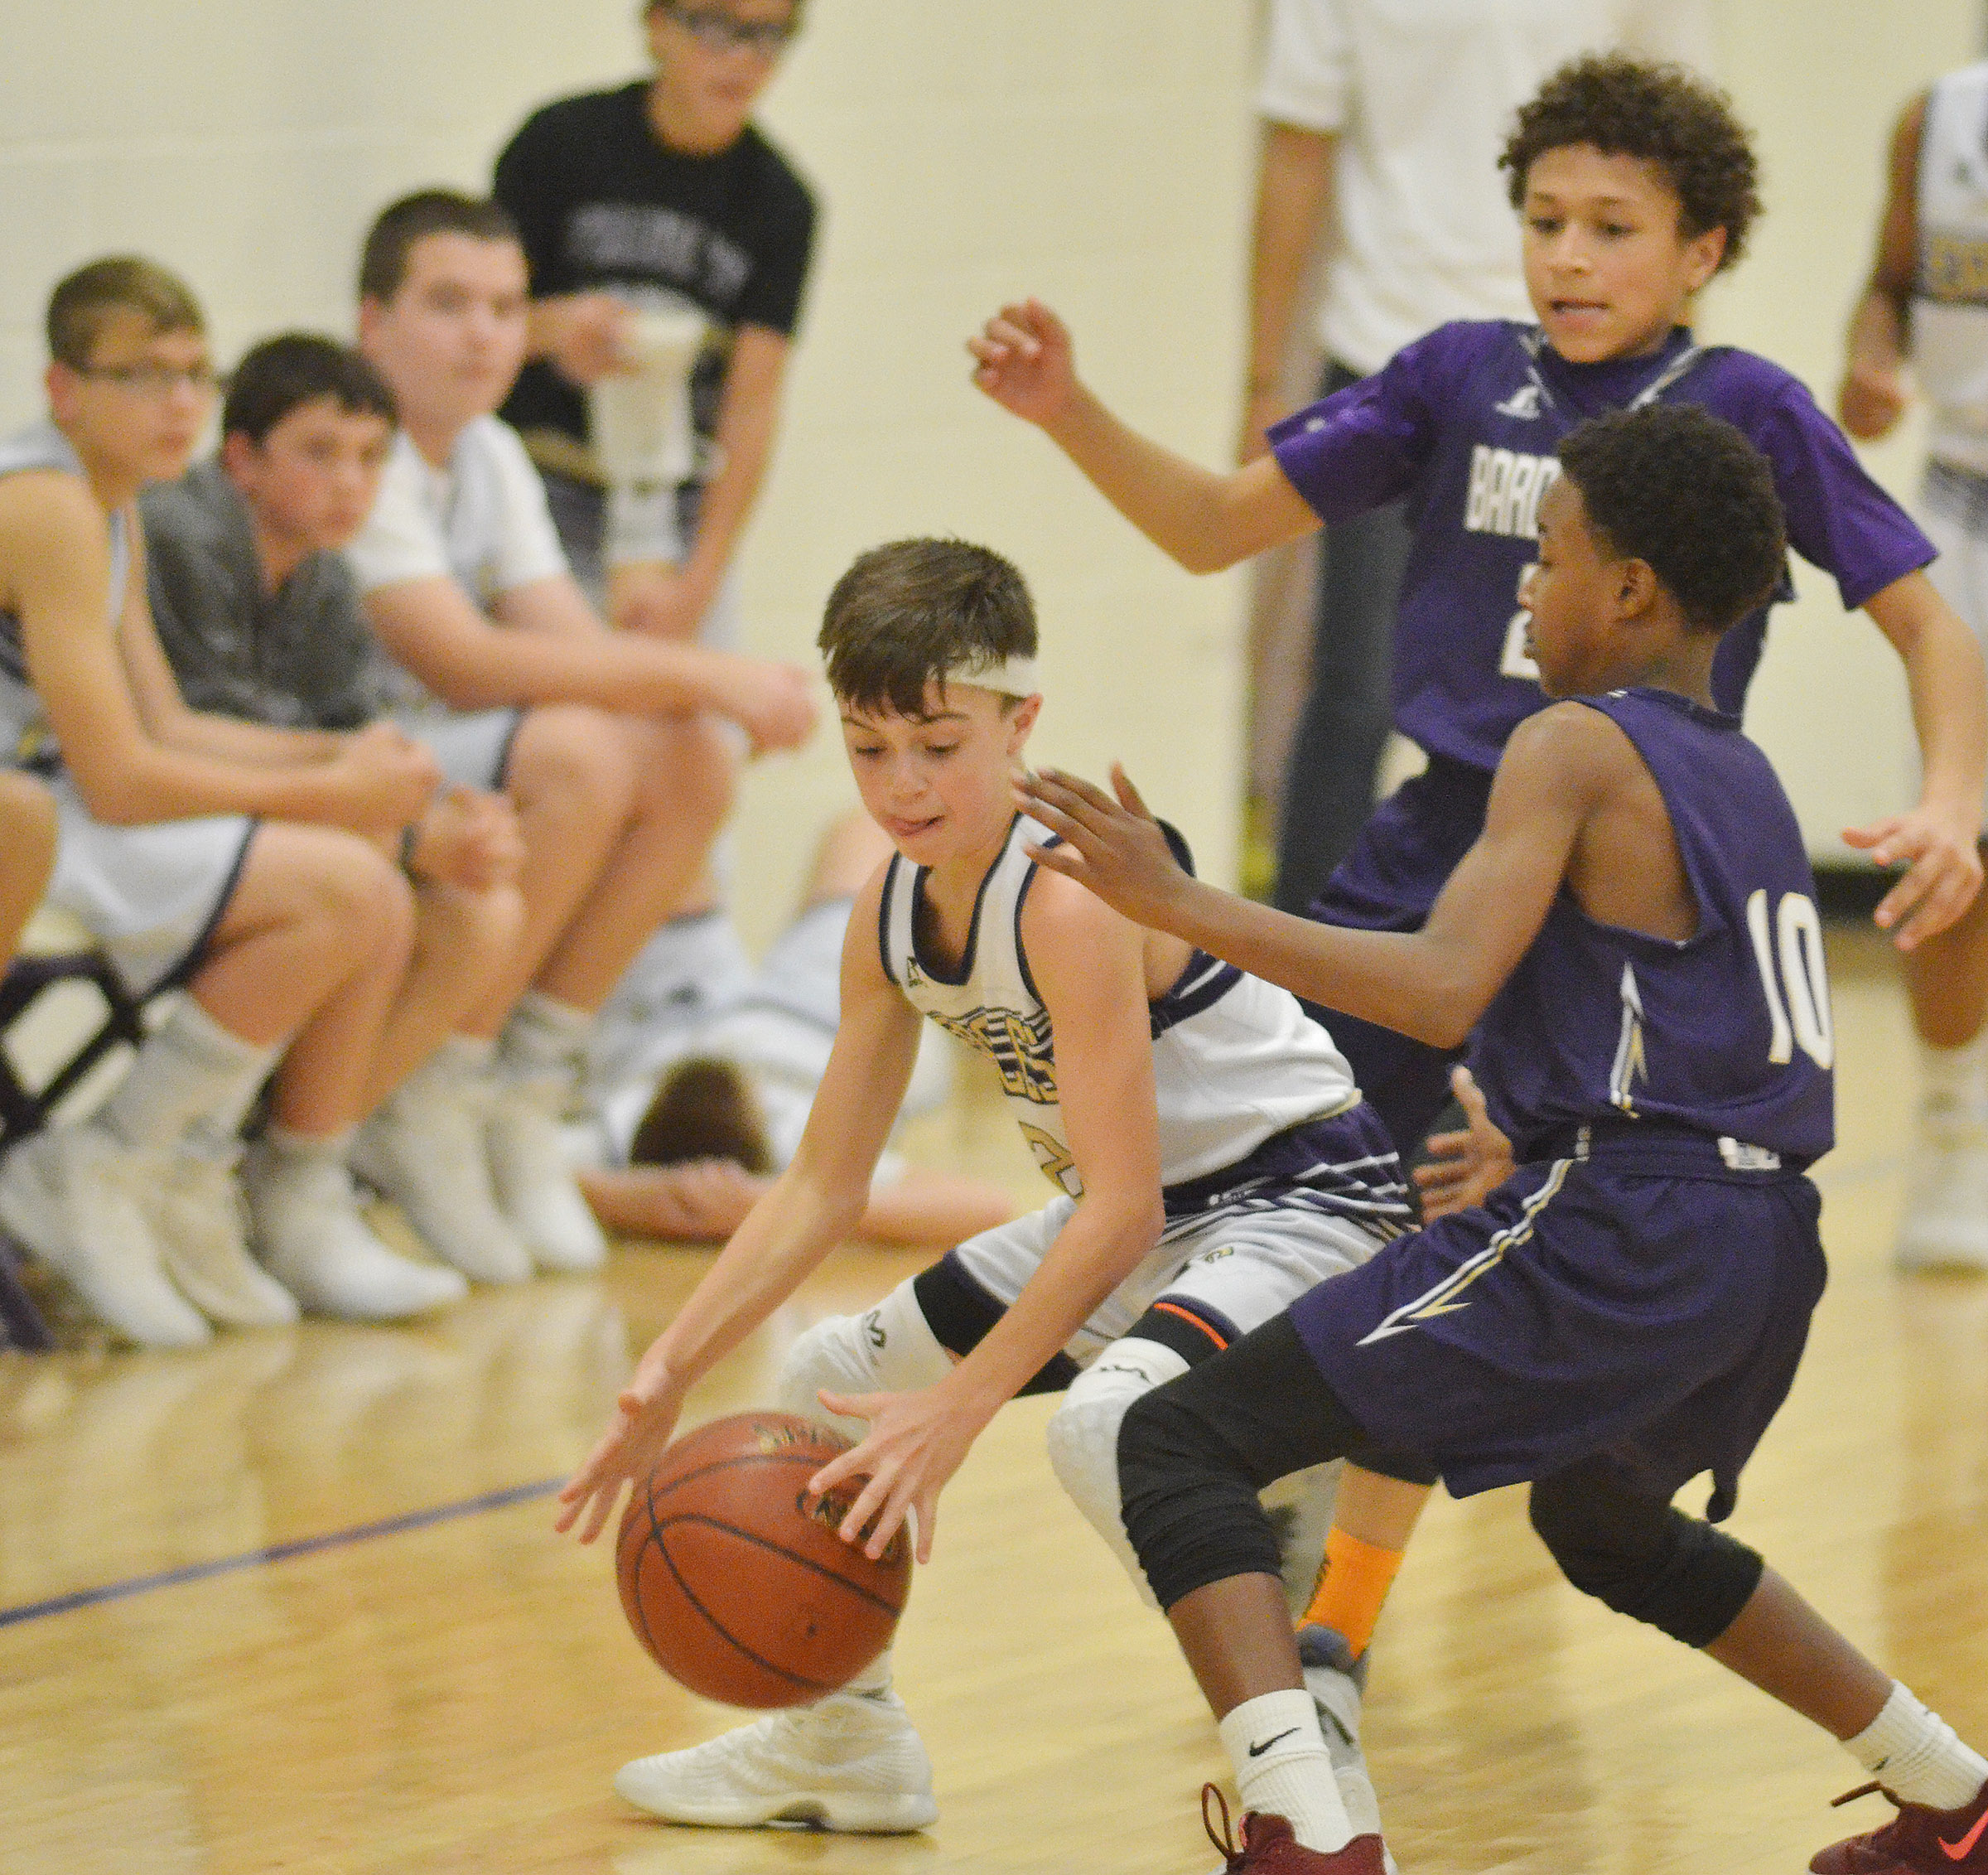 CMS seventh-grader Chase Hord protects the ball.